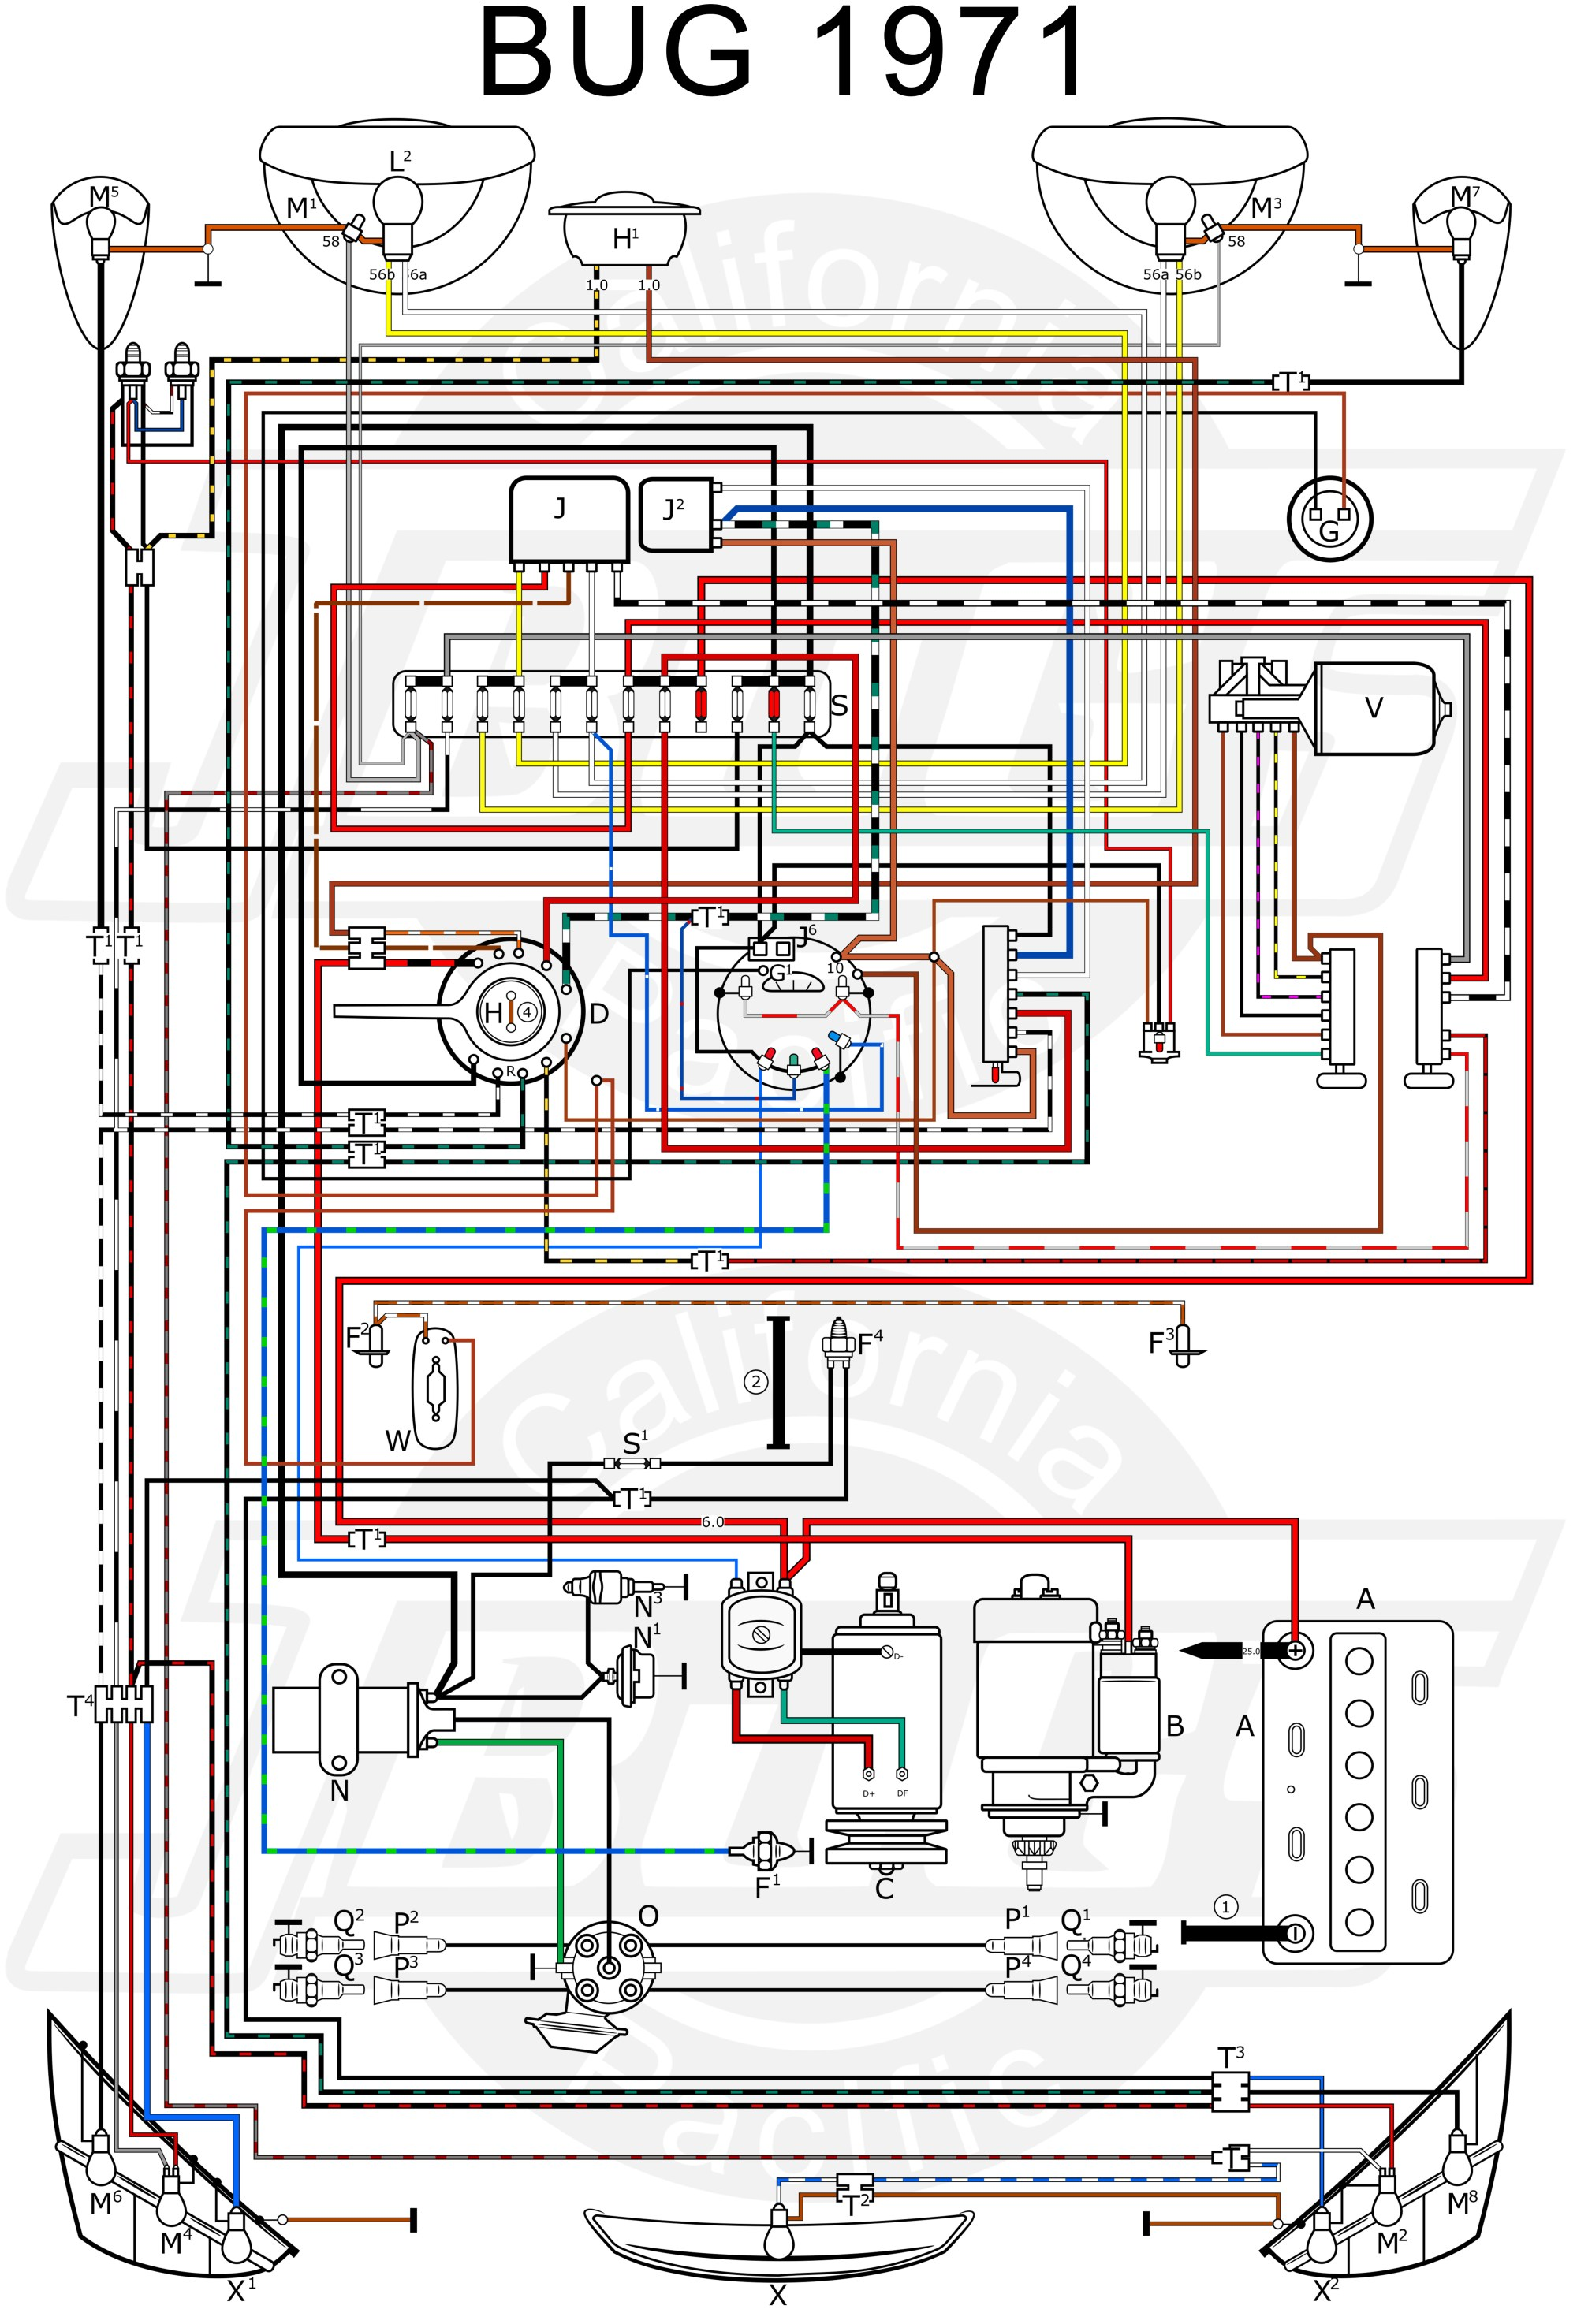 hight resolution of vw wire diagram schematic wiring diagrams rh 46 koch foerderbandtrommeln de vw generator to alternator conversion wiring diagram vw alternator